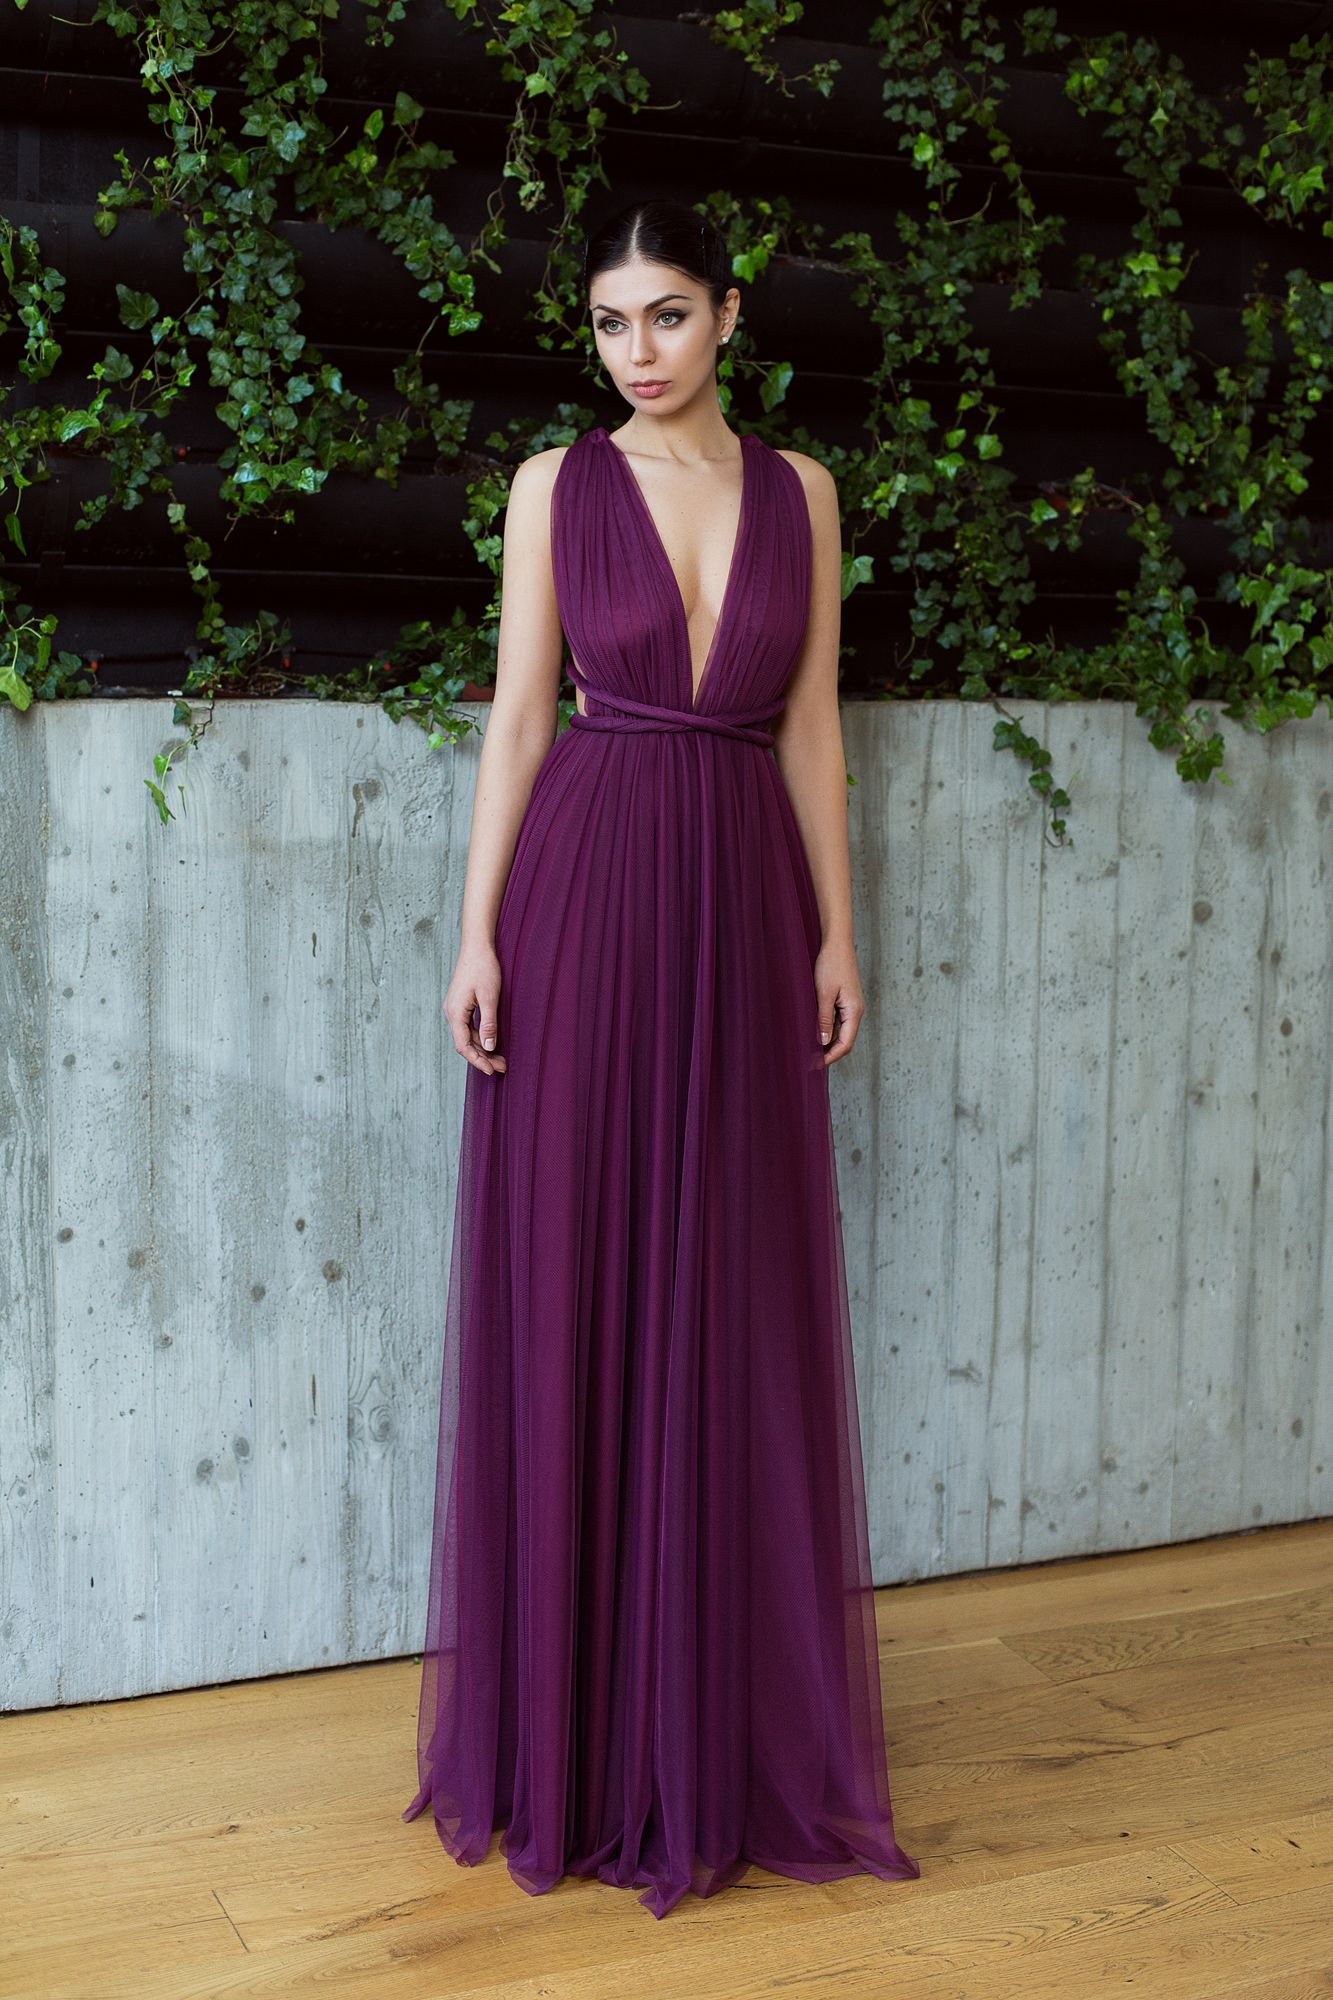 Marsala backless tulle dress   tulle gown   wedding guest dress   bridesmaids  dress   bridesmaids gown   Rochie decollate   Rochie cu spatele gol din  tulle ... cd7d3904078e